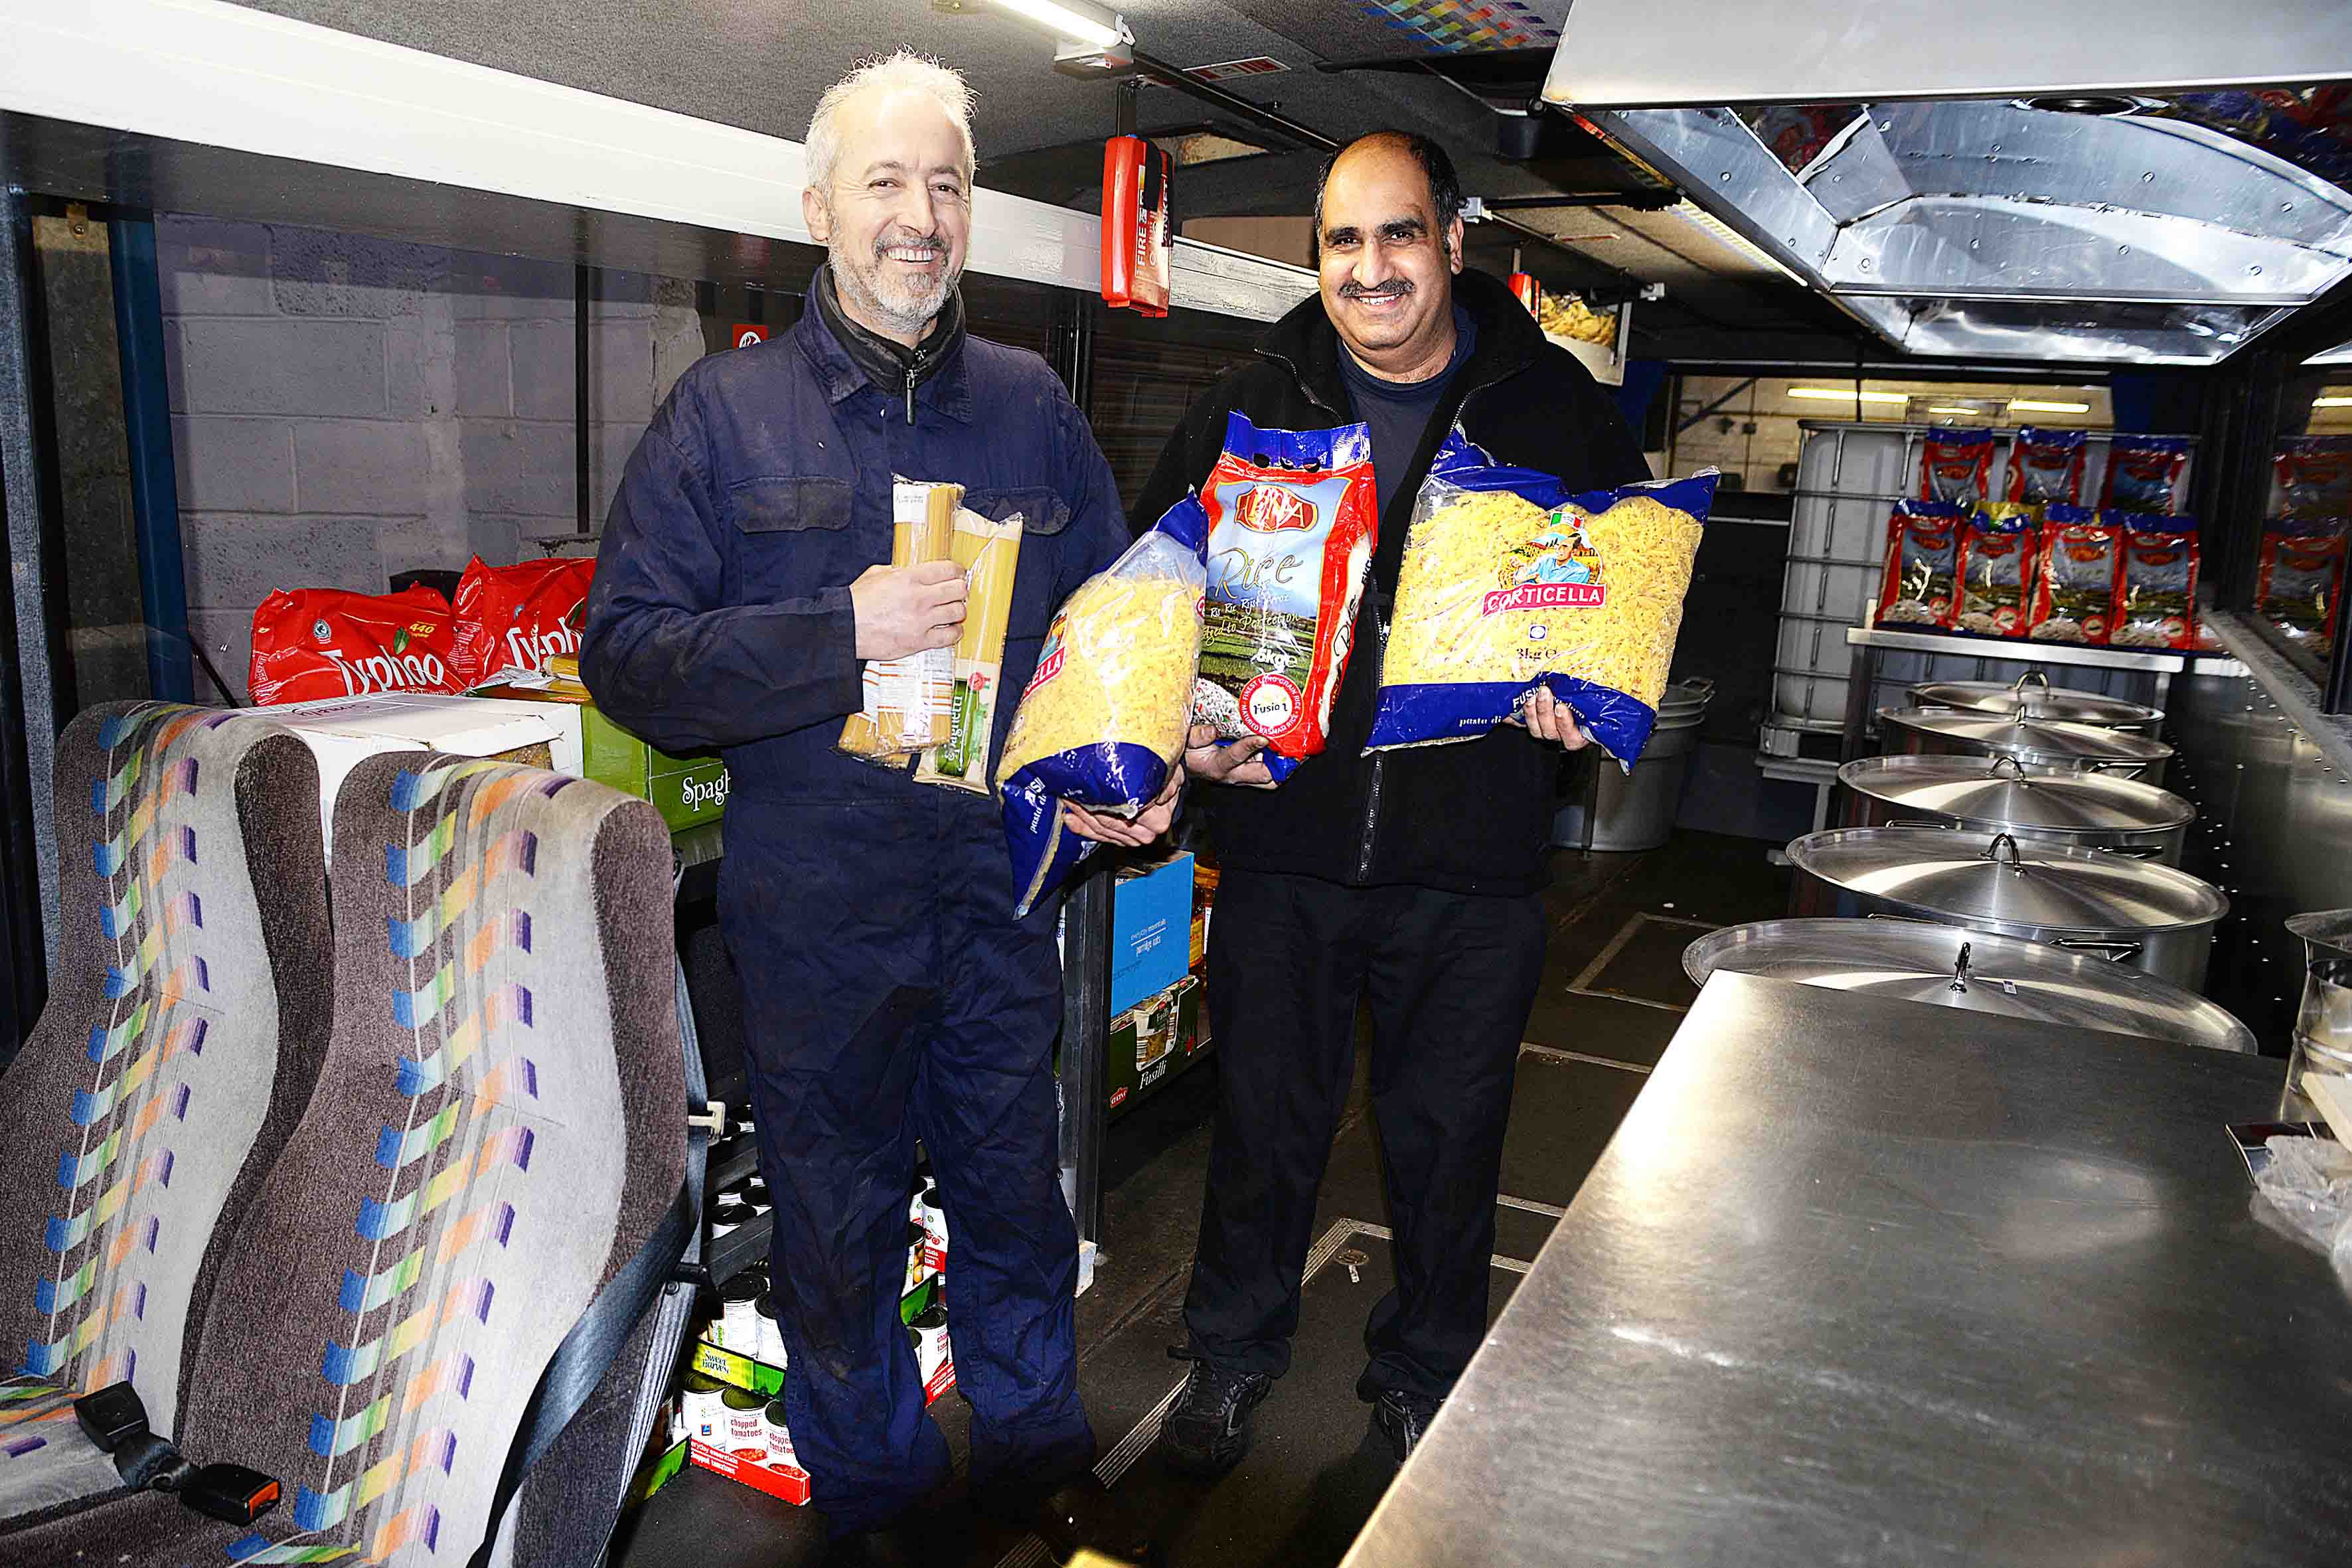 Take a look at this bus which has been converted into a travelling kitchen. nGhafoor Hussain from Stockton has spent thousands of pounds of his own money buying and transforming a single-decker bus into this moving canteen so he can feed thousands of refugees this Christmas. nAnd the 45-year-old will embark on the journey today - one that will take him away from his family for at least three weeks. n¿About four weeks ago I took a van full of food to the refugees in Austria, Slovenia and Croatia,¿ said Ghafoor, a dad of four and grandad of three. n¿While I was there I discovered that the people were mostly only getting cold meals. nnGhafoor Hussein of Stockton is travelling through Europe feeding refugees using a coach which has been kitted out with a kitchen, along with volunteers he sets off on Friday (18th December).nPictured (left) volunteer Bamo Ghafari and Ghafoor Hussein.